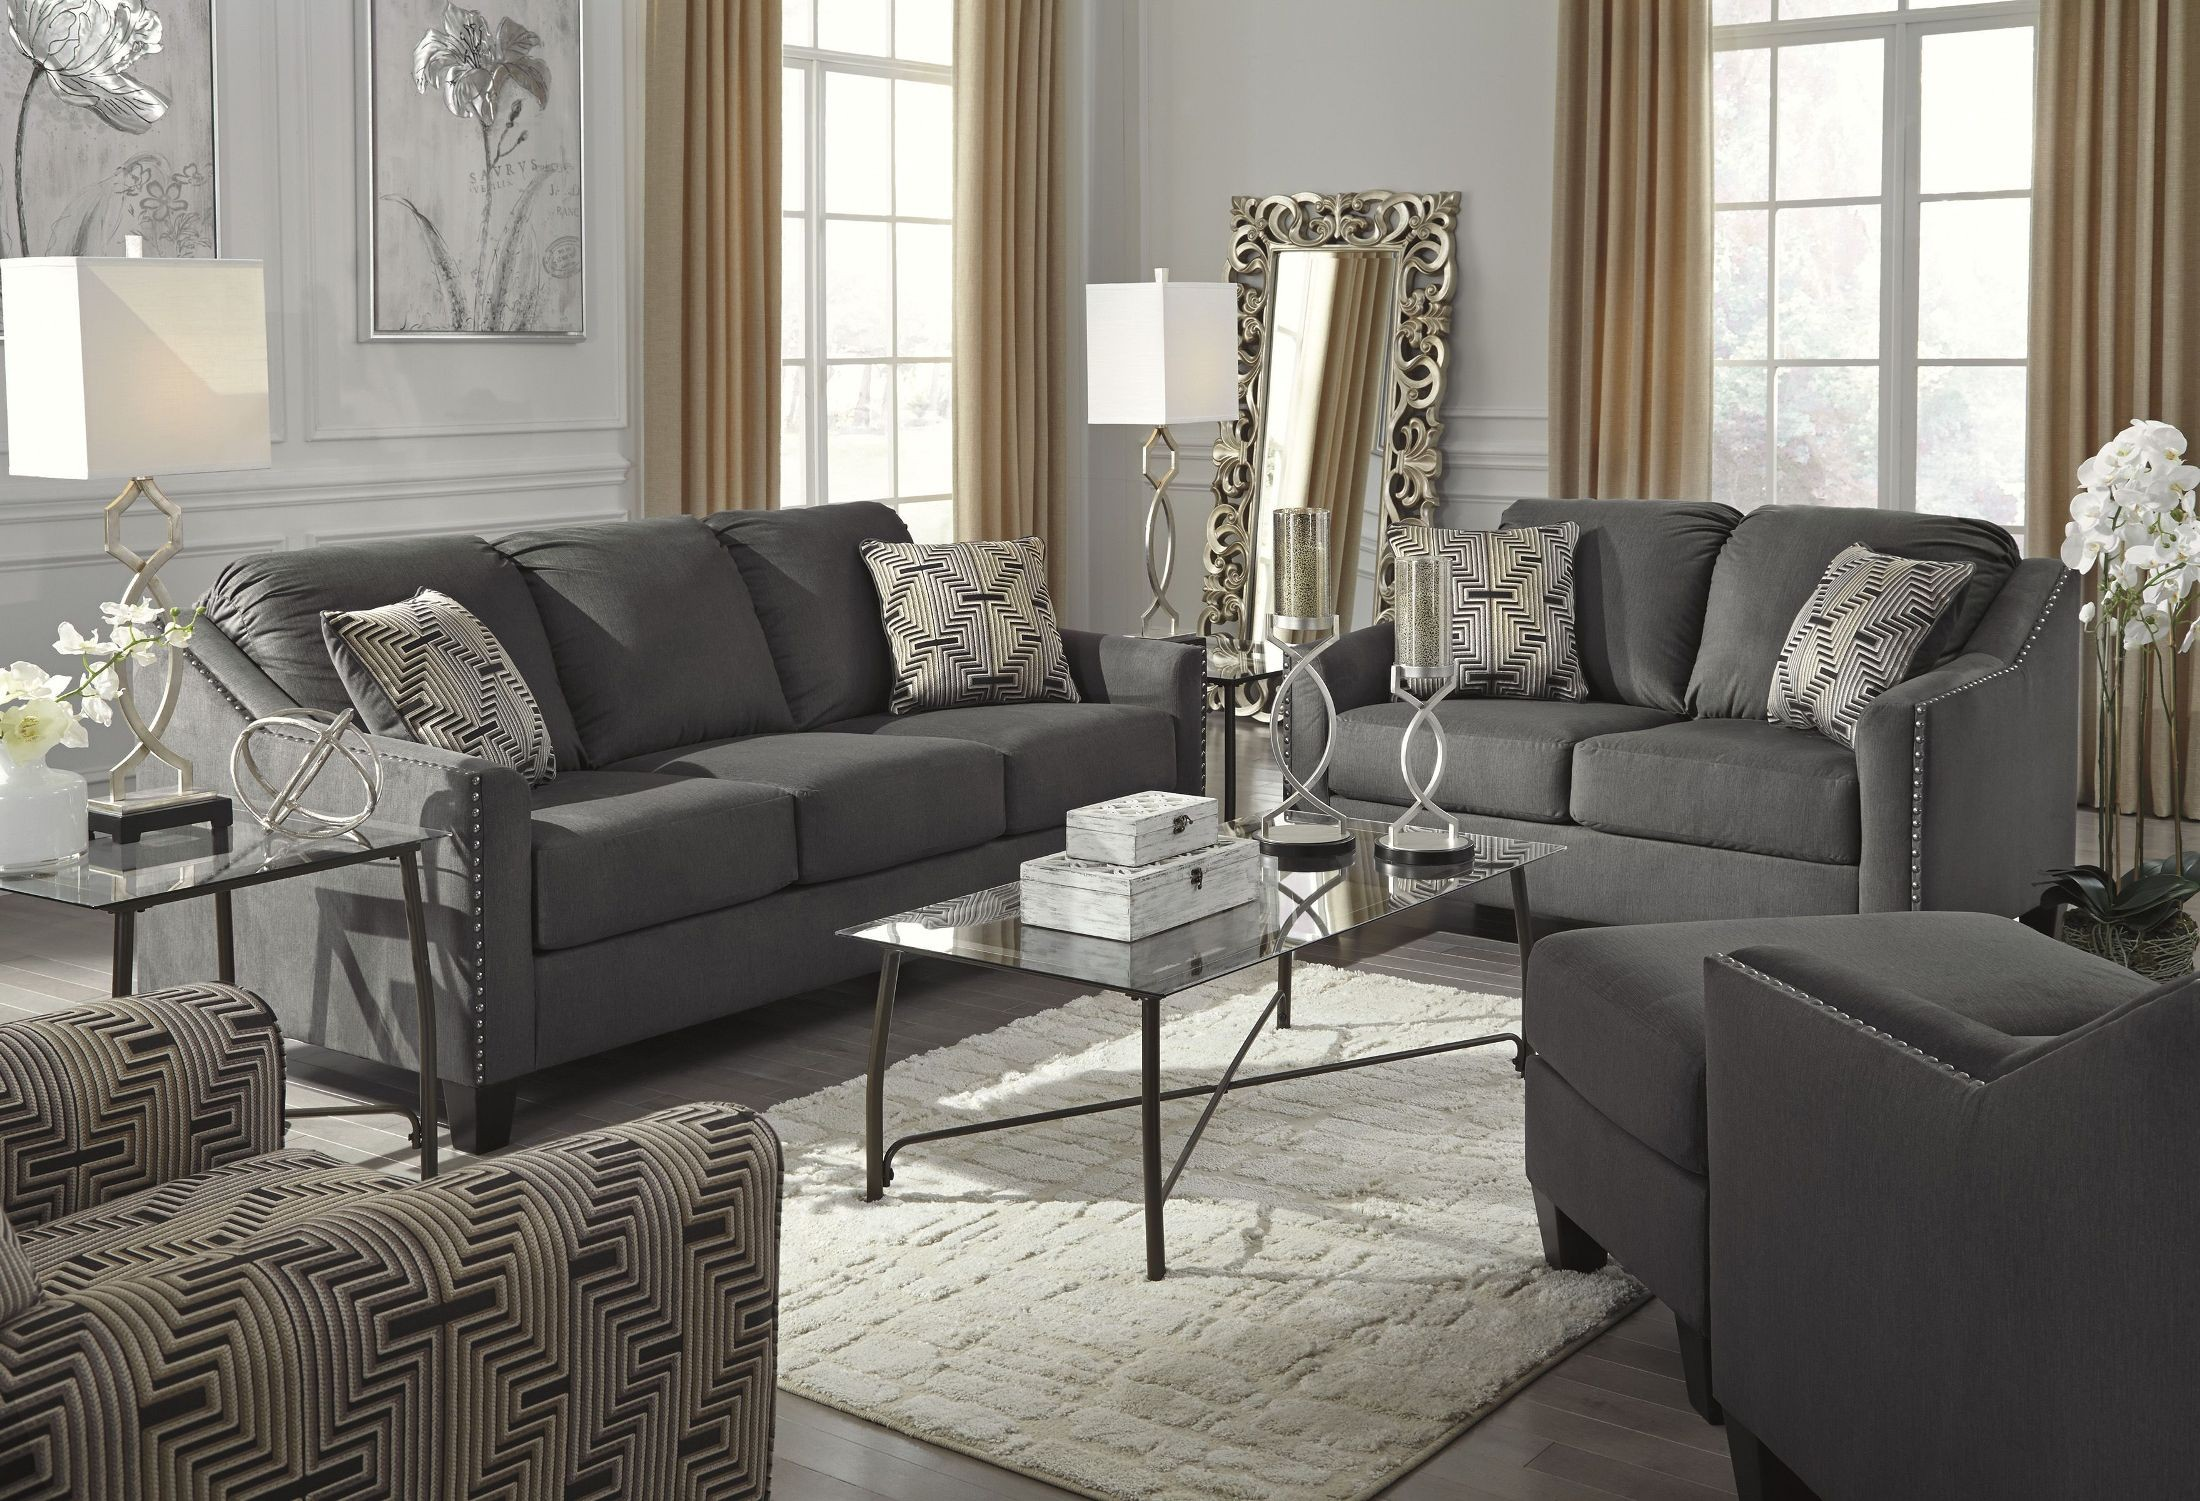 Torcello Graphite Living Room Set 1130338 Ashley